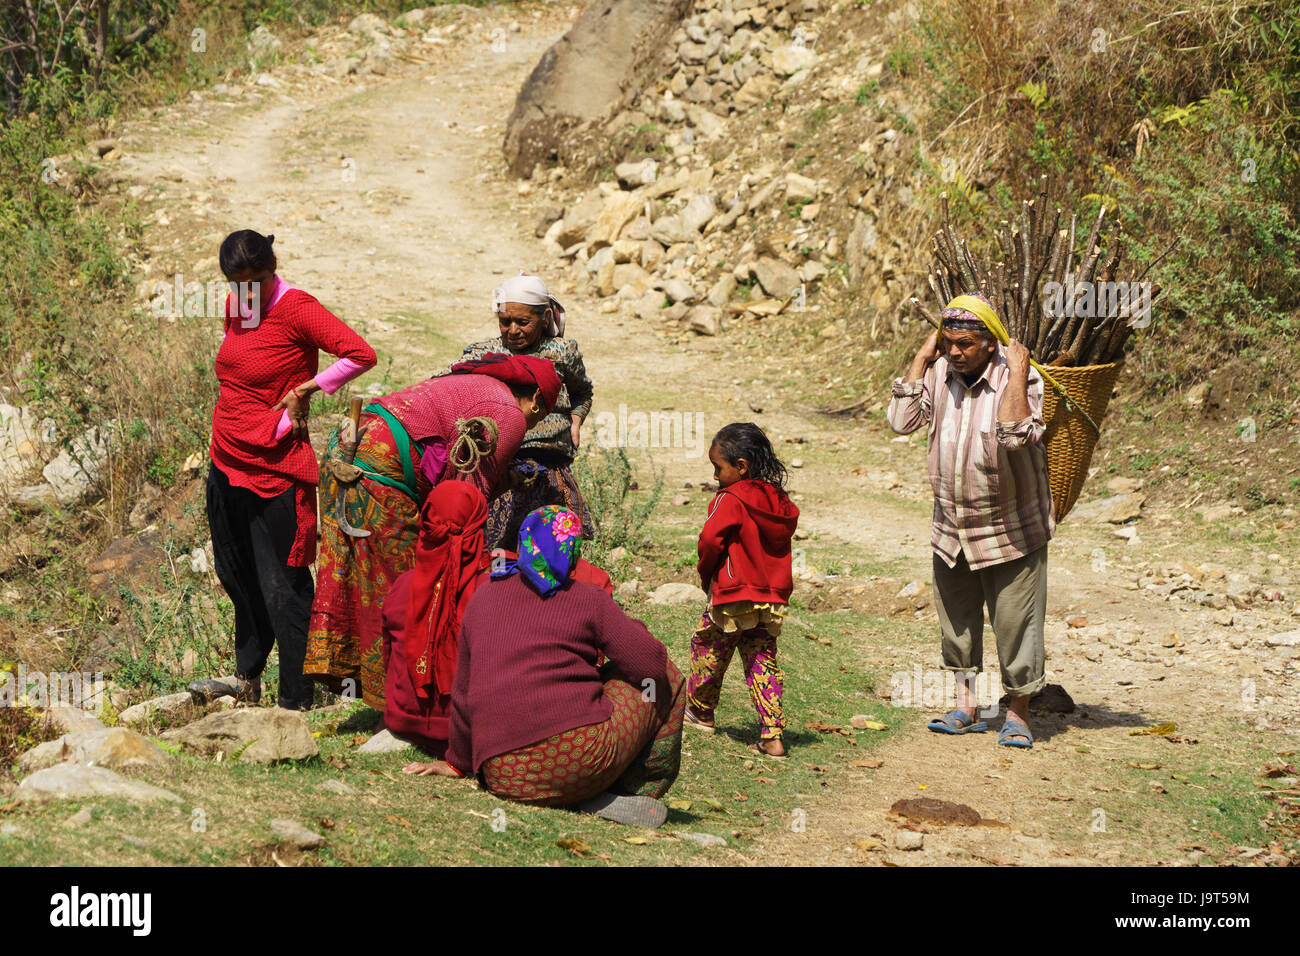 Local people on the Annapurna circuit betweeen Lili Bhir and Ghermu. - Stock Image